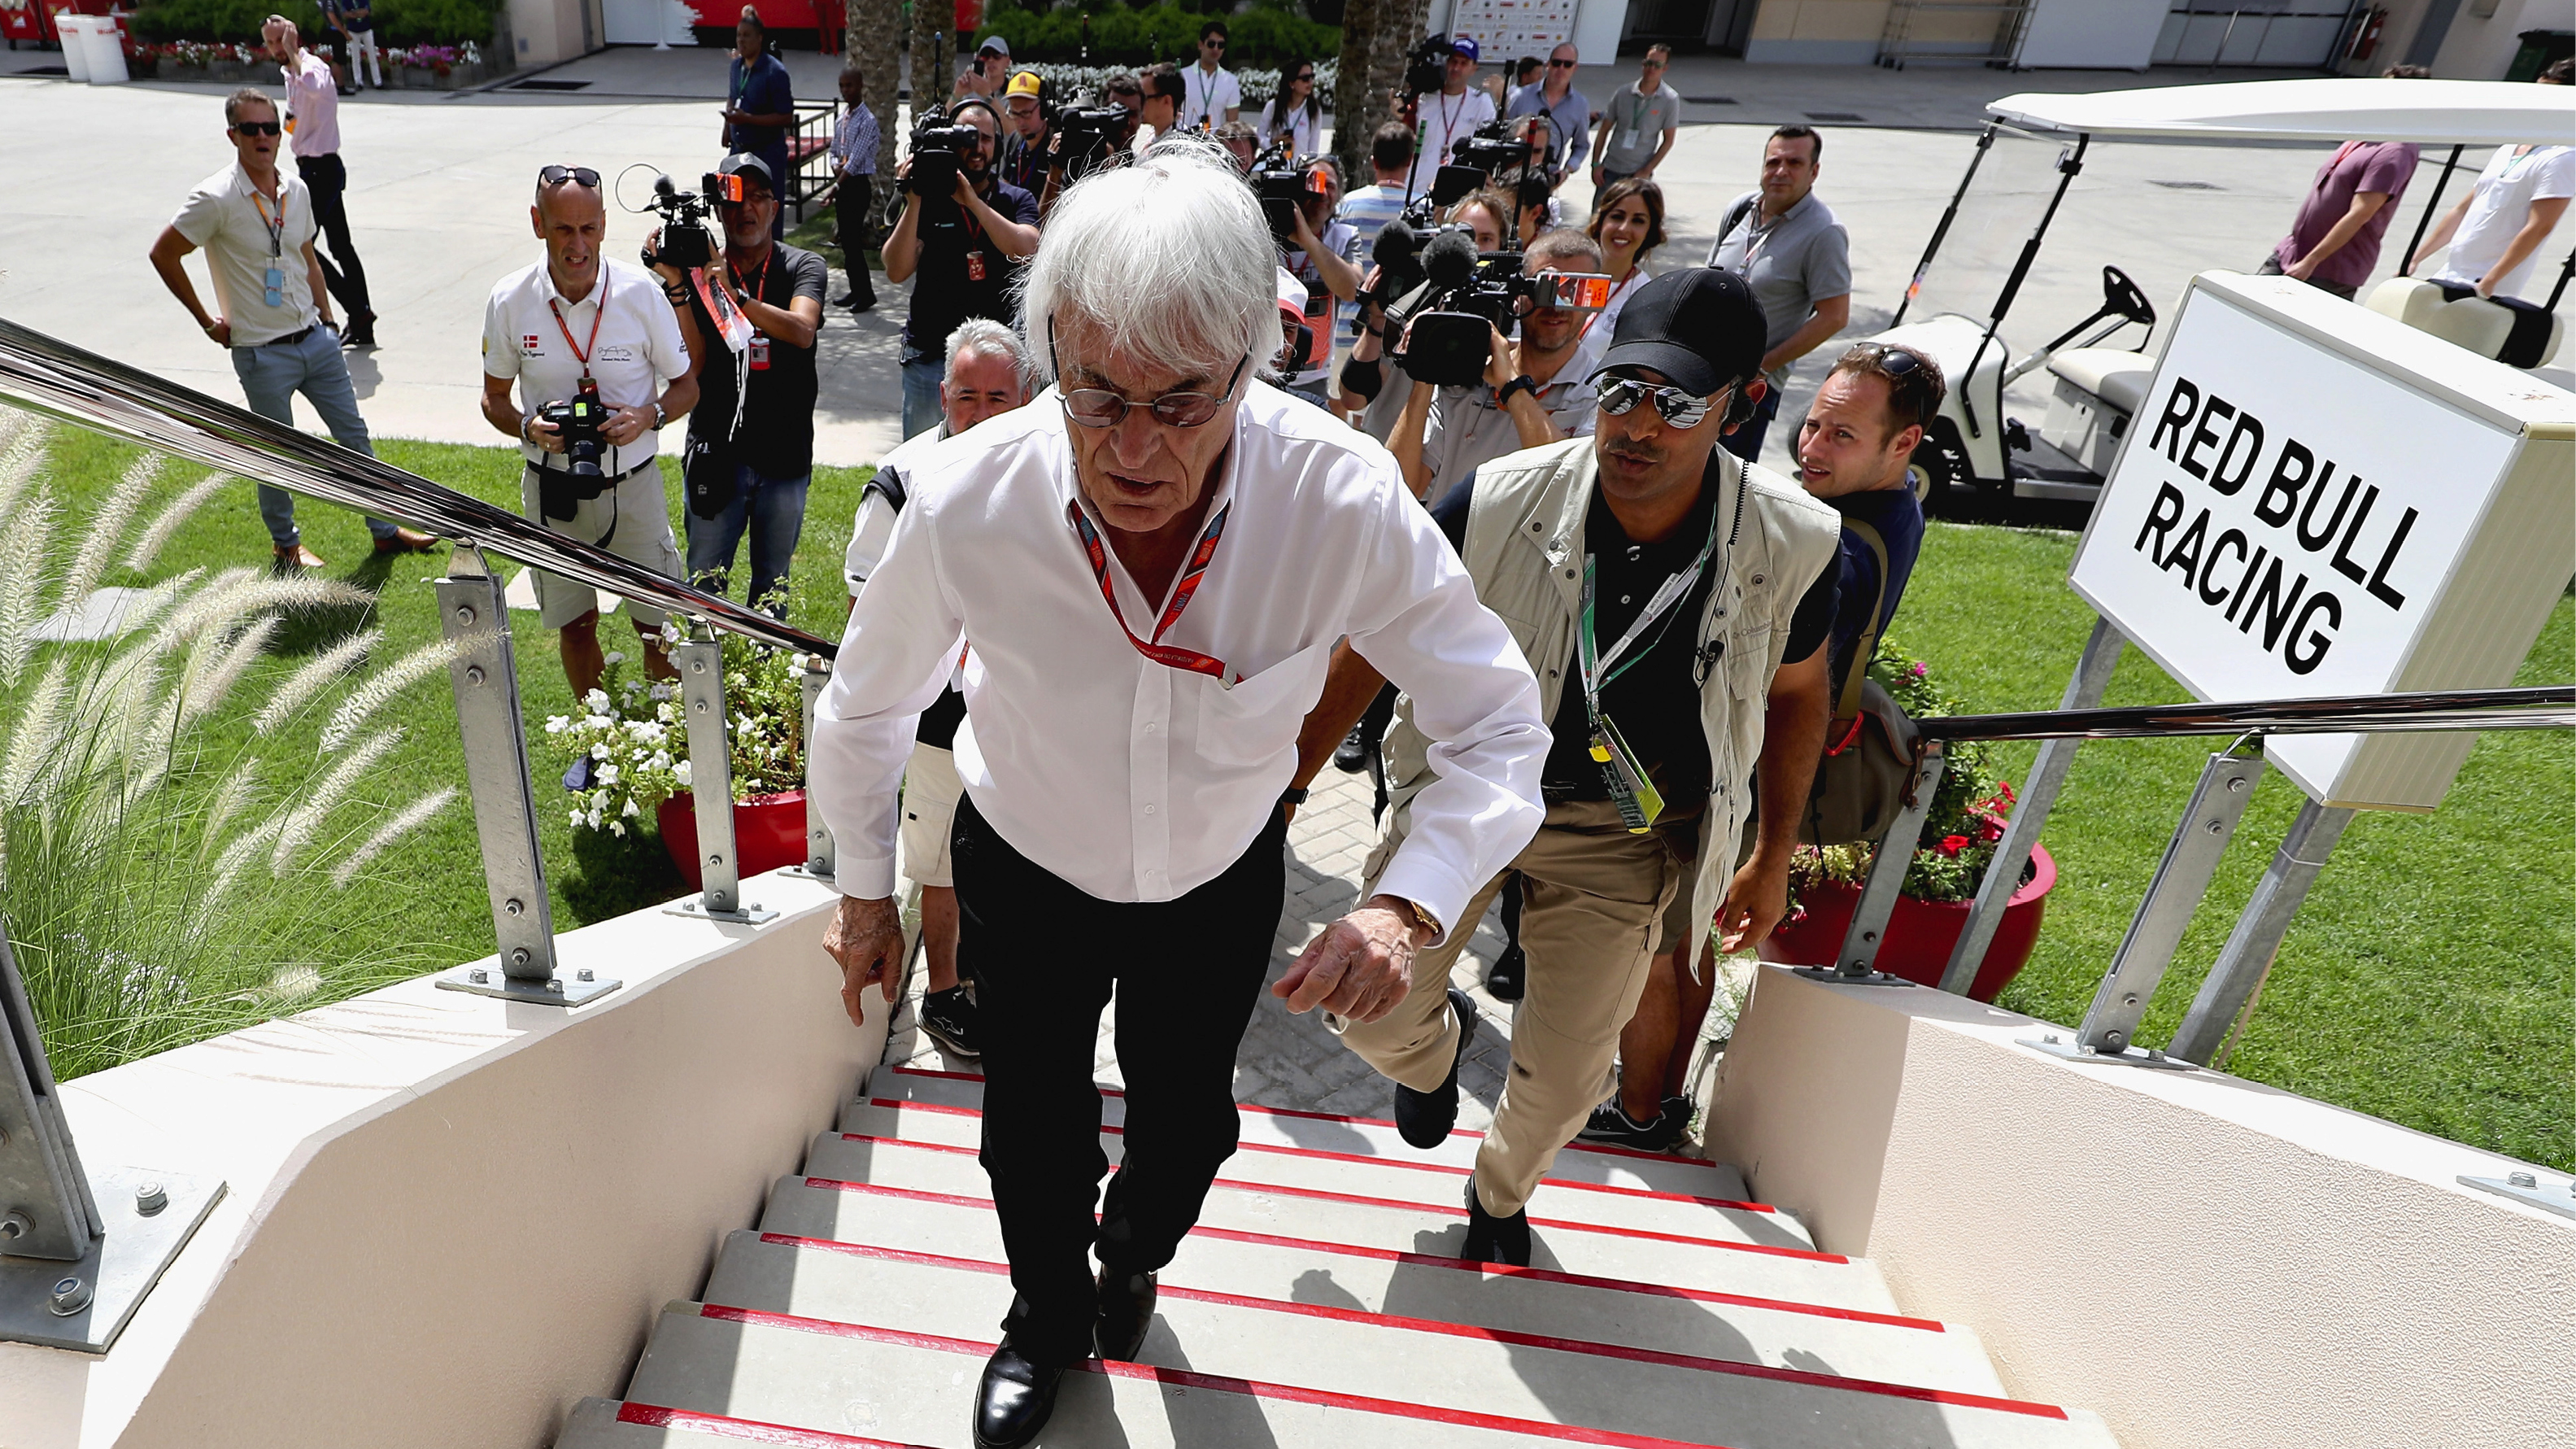 Bernie Ecclestone, former chief executive and current chairman emeritus of the Formula One Group, arrives at the Bahrain Grand Prix in April